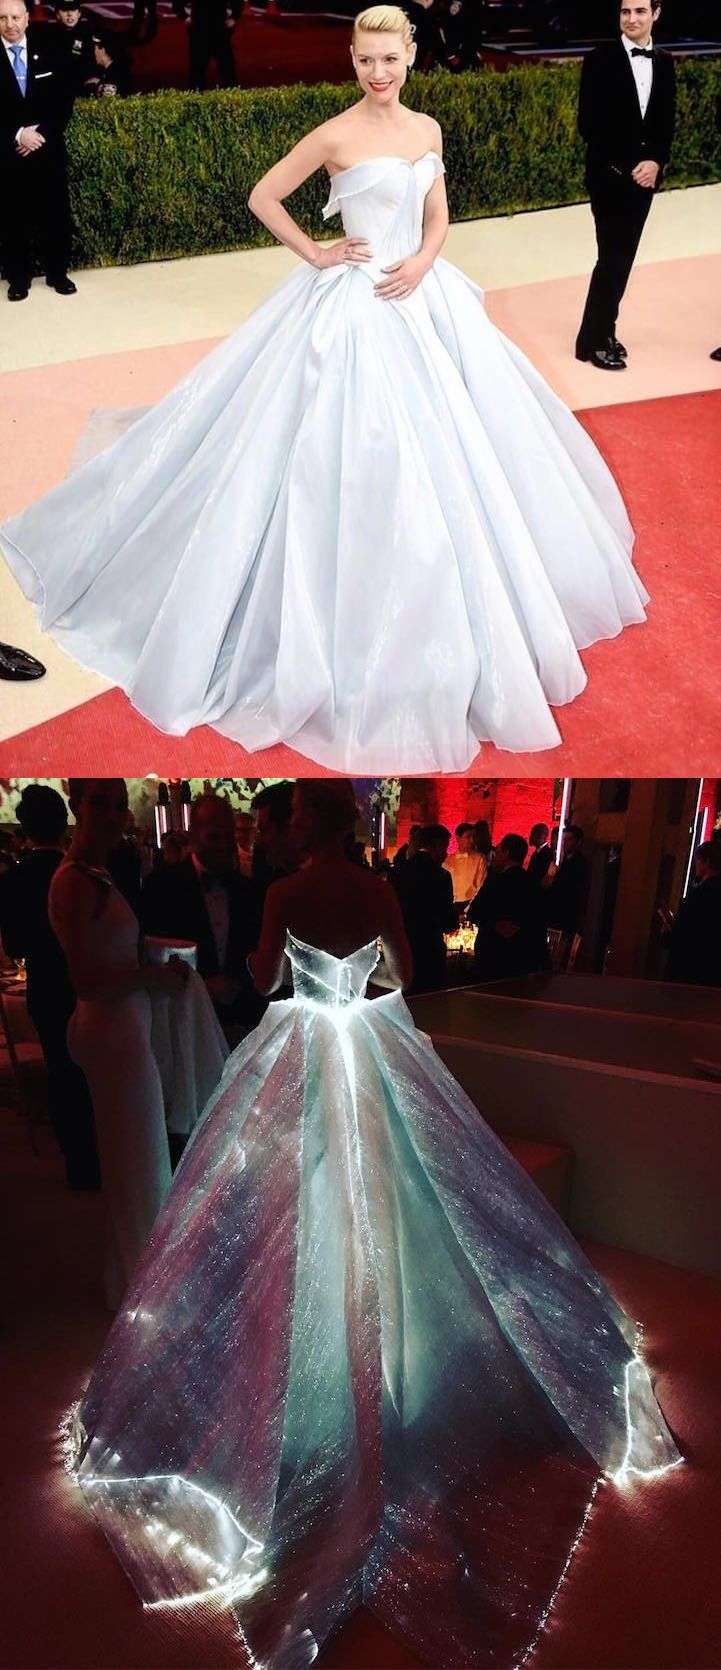 claire danes becomes real life cinderella at the met gala in glowing